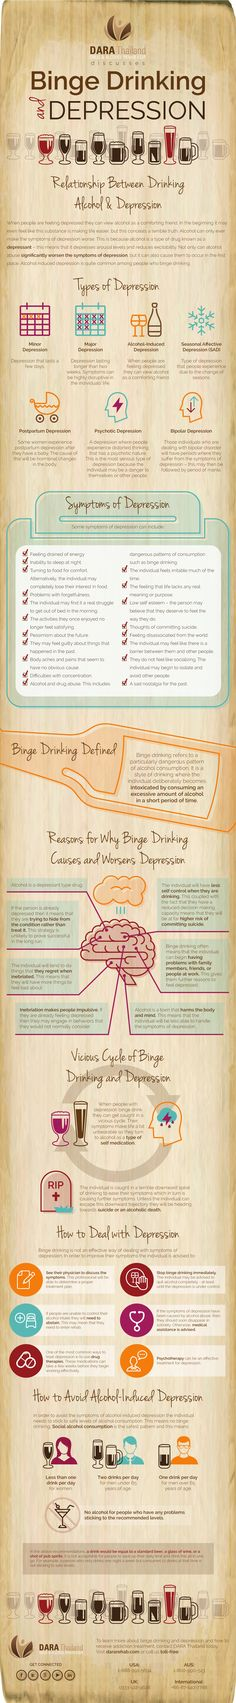 Binge drinking and depression go together. Whether a person first began drinking in order to deal with their depression or developed depression after they started binge drinking, their treatment should be the same: a path of therapeutic intervention based Infp, Pseudo Science, Dealing With Depression, Depression Recovery, Sober Life, Addiction Recovery, Addiction Therapy, Bipolar Disorder, Cognitive Behavioral Therapy